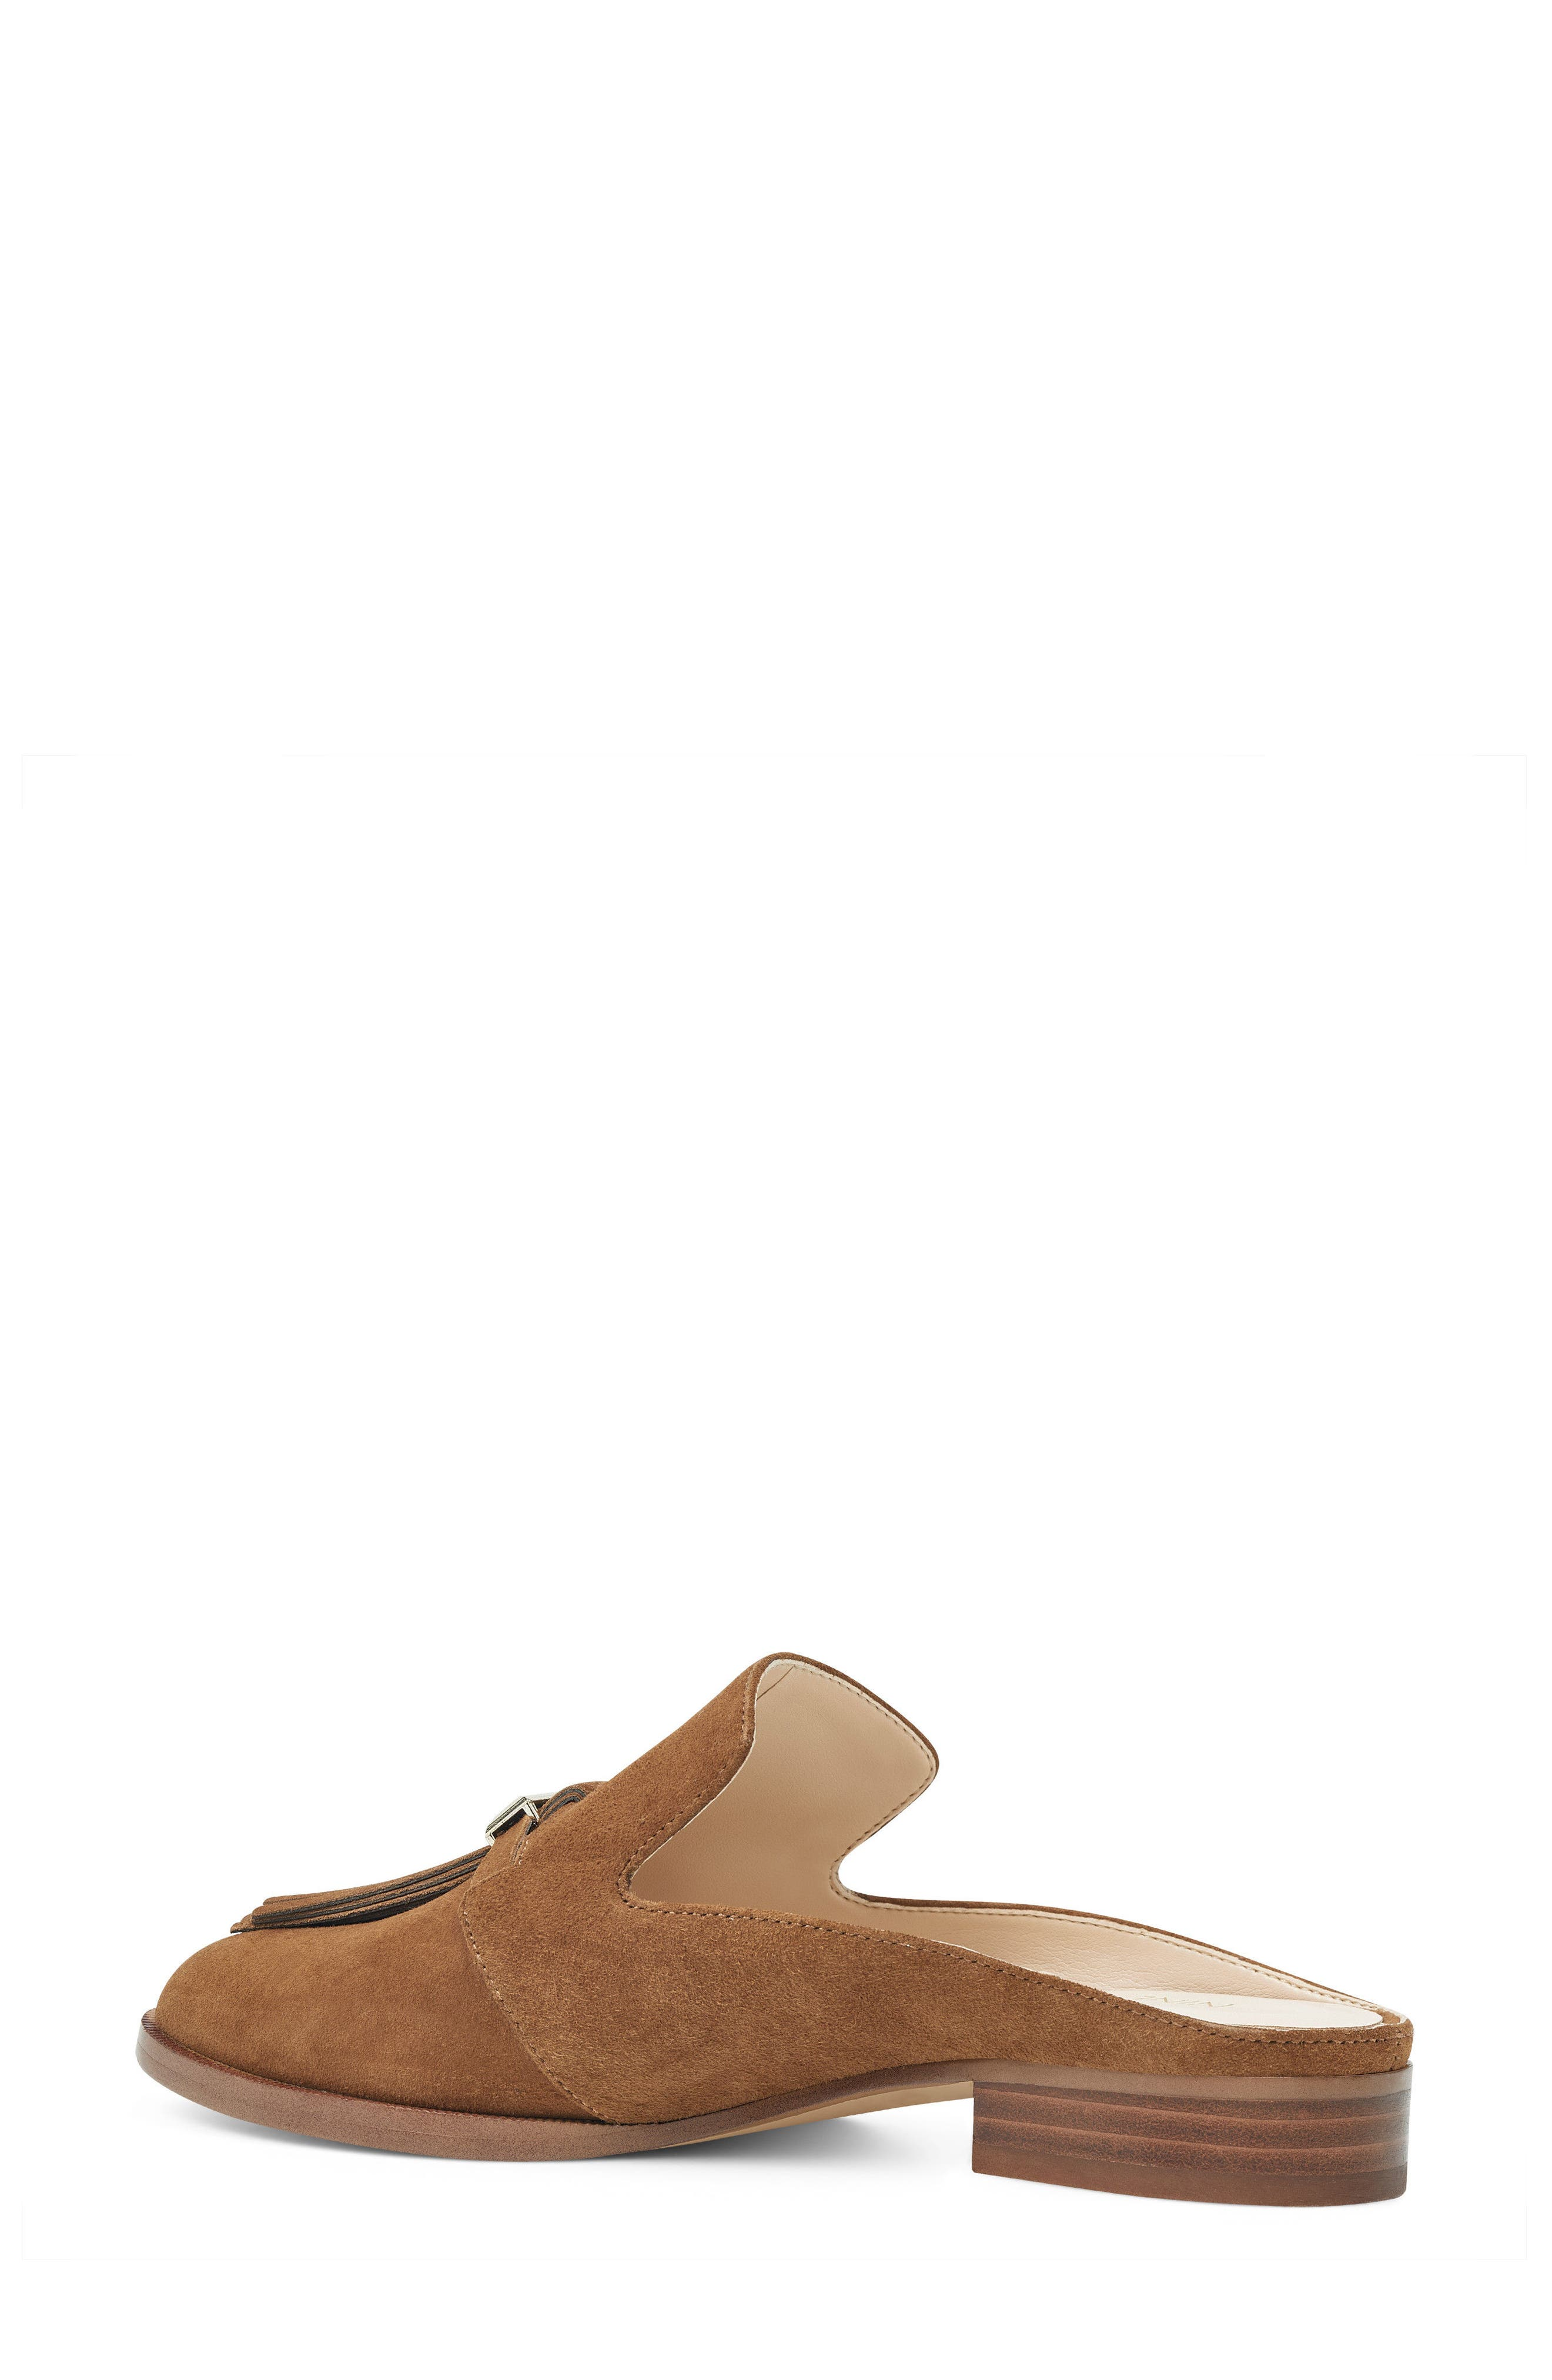 Huebart Loafer Mule,                             Alternate thumbnail 2, color,                             Brown Suede